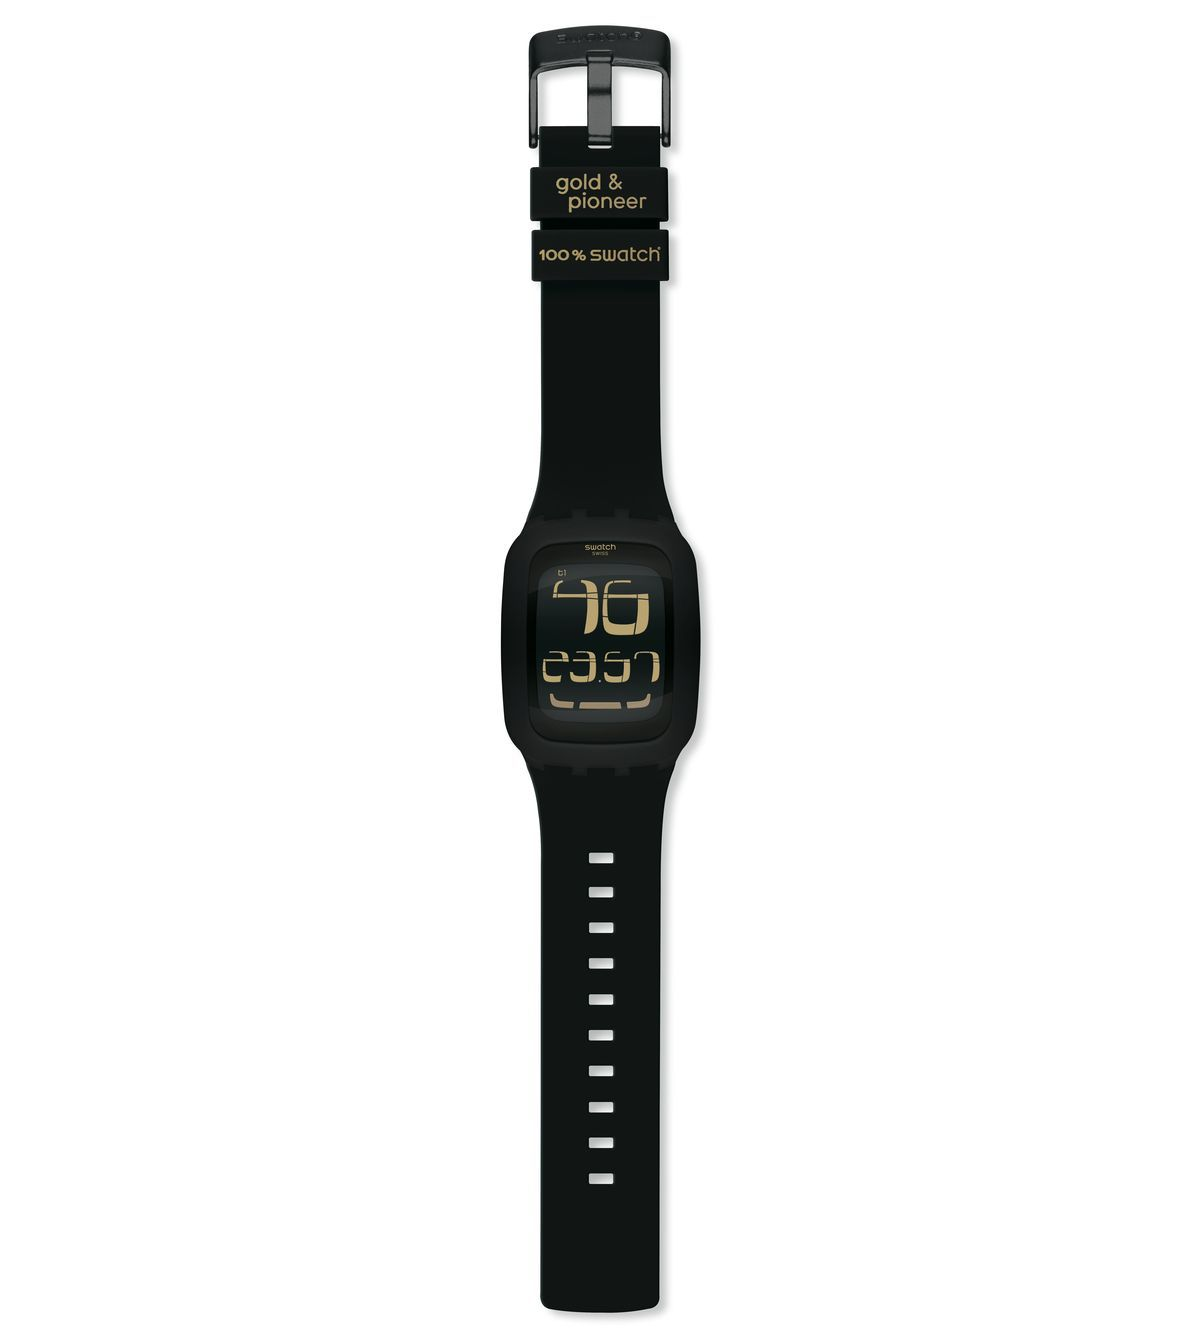 SWATCH TOUCH BLACK / GOLD & PIONEER 2011 - SURB100S